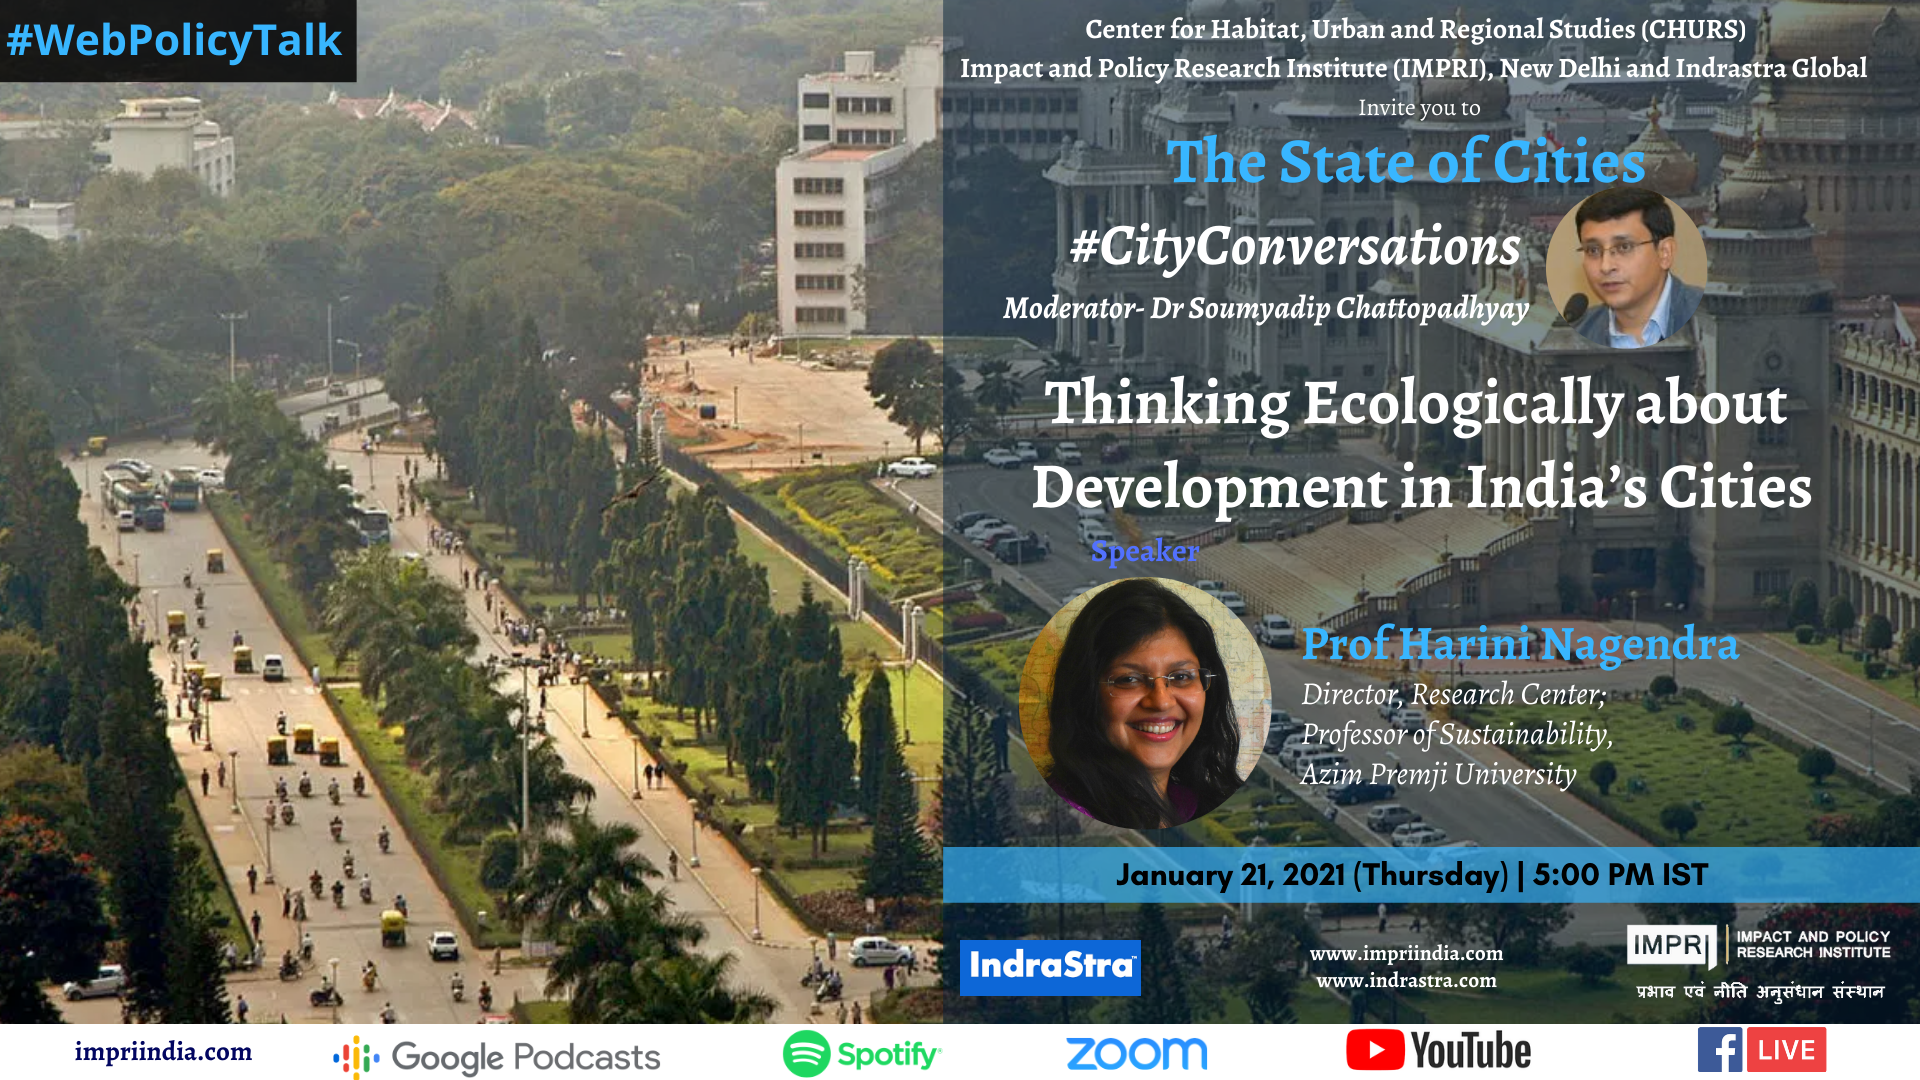 Thinking Ecologically about Development in India's Cities